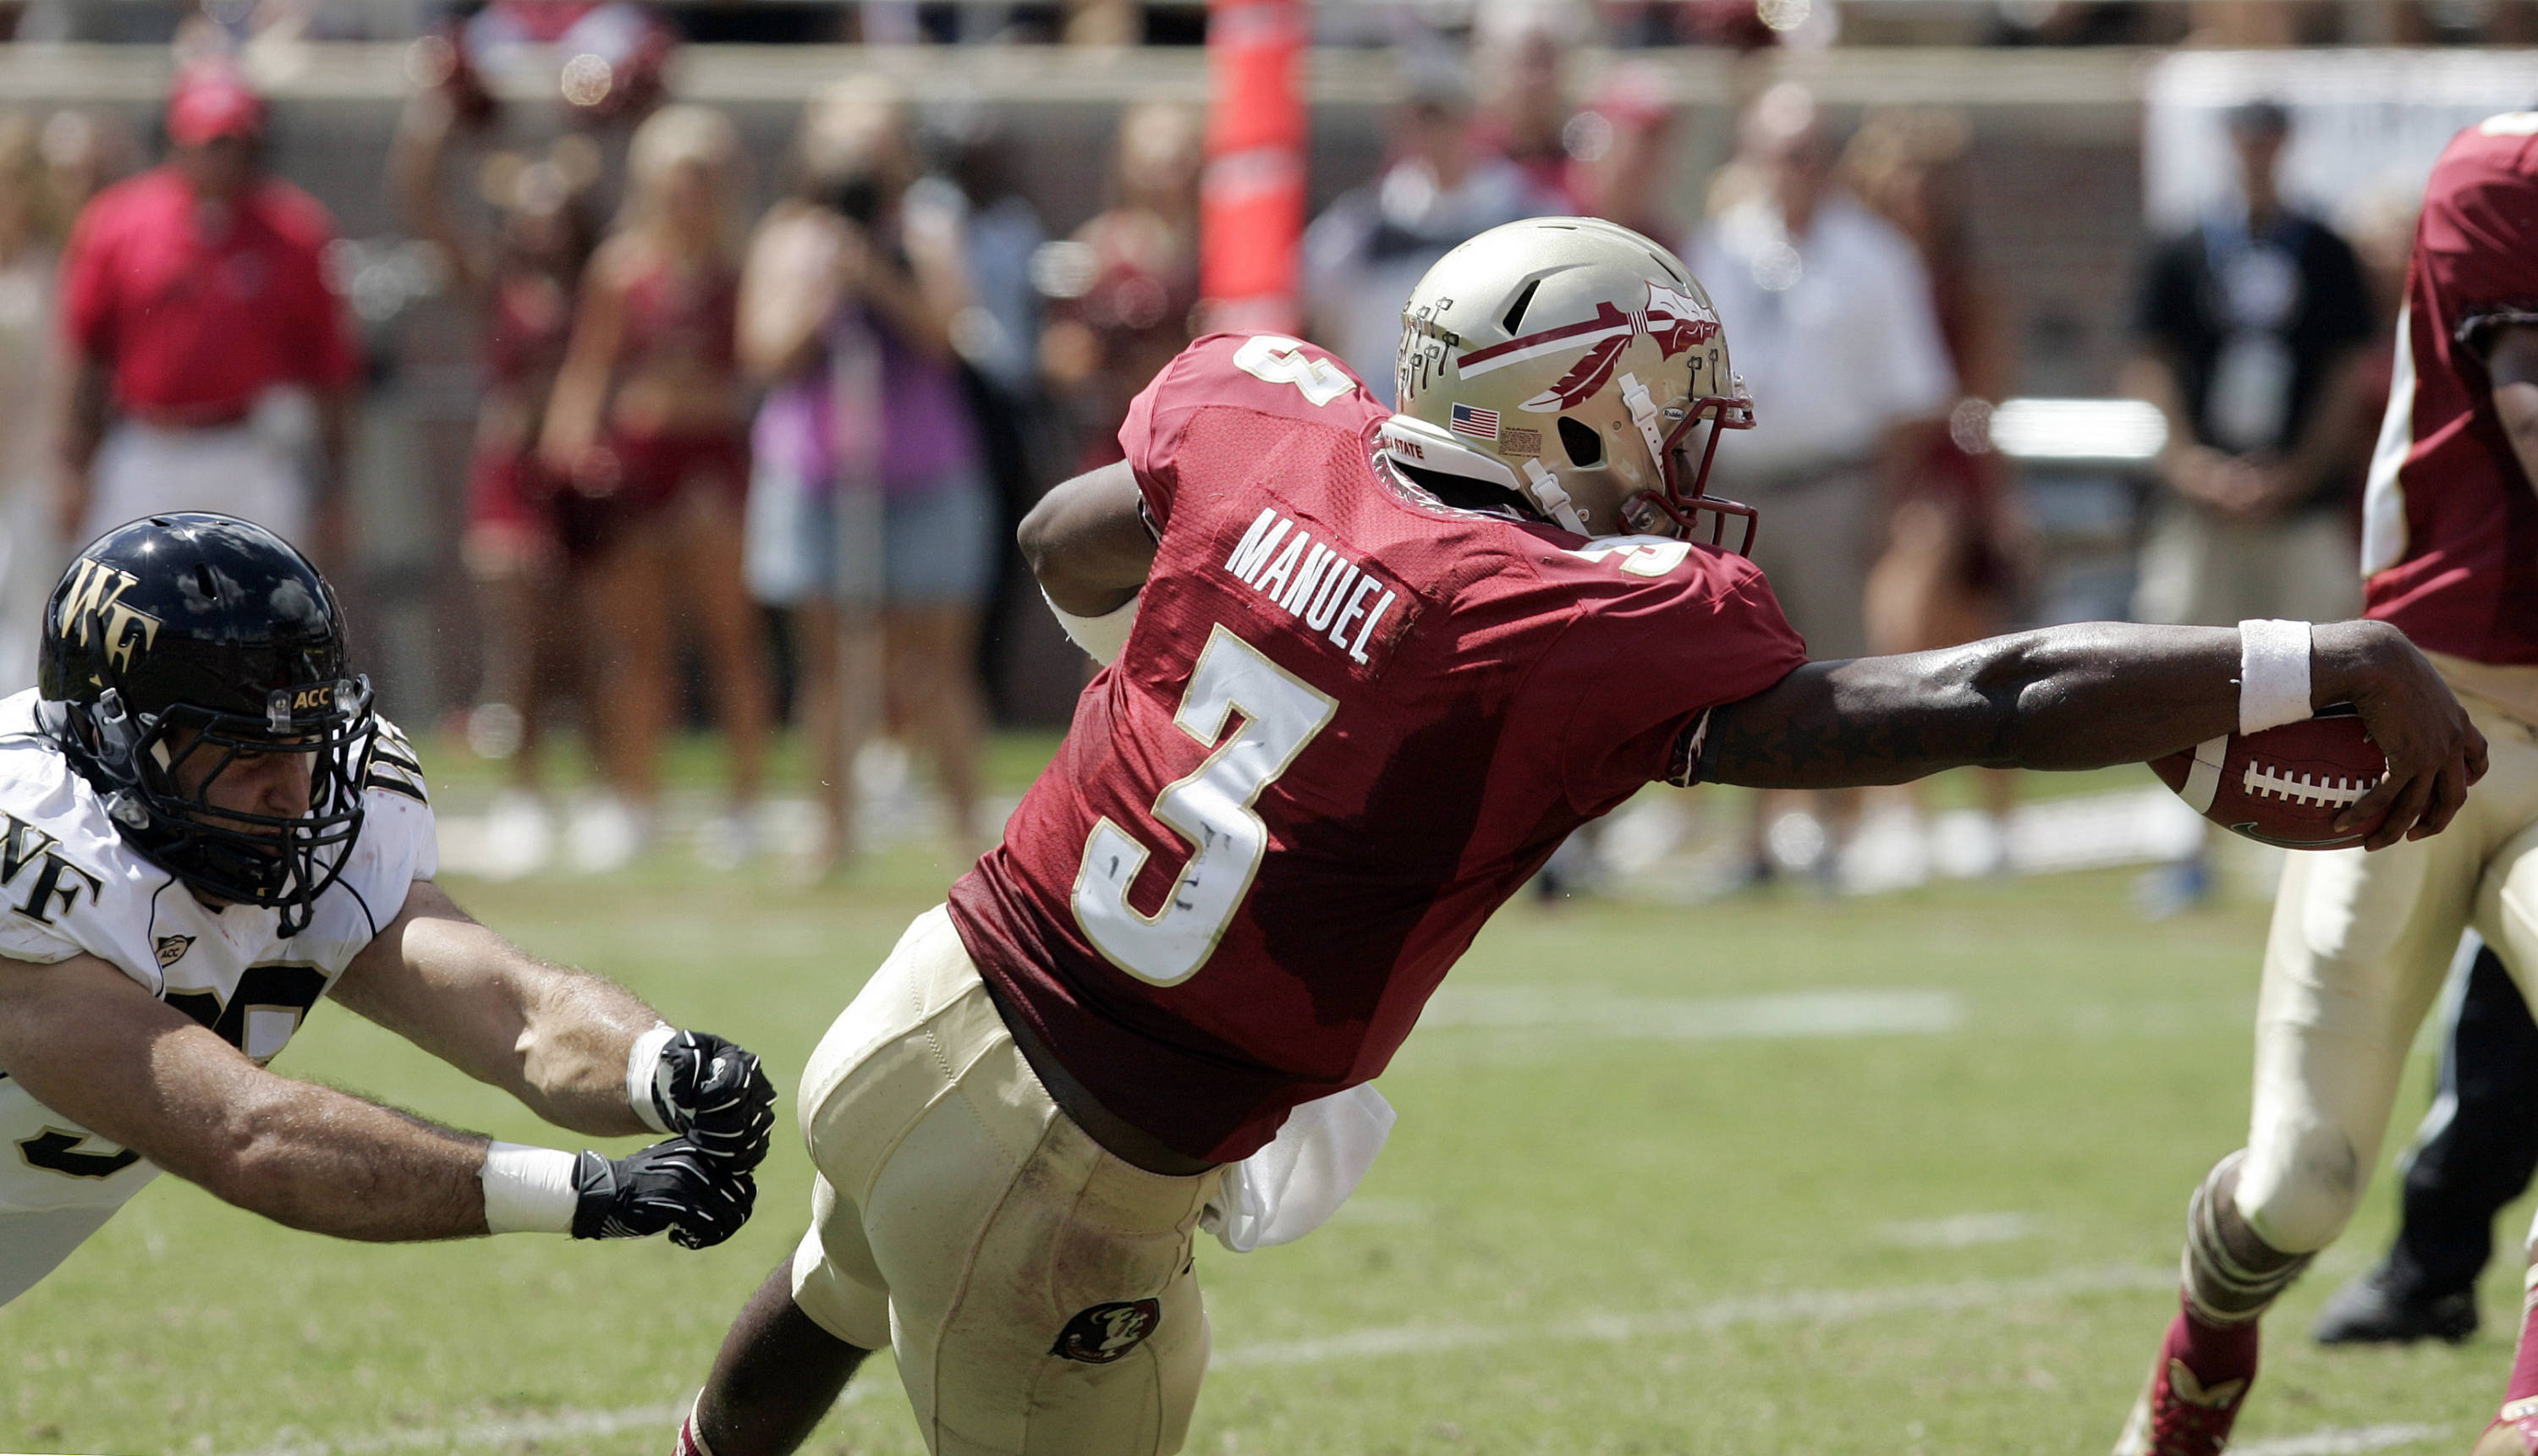 Florida State's EJ Manuel extends the ball over the goal line as he escapes the grasp of Wake Forest's Scott Betros to score. (AP Photo/Steve Cannon)